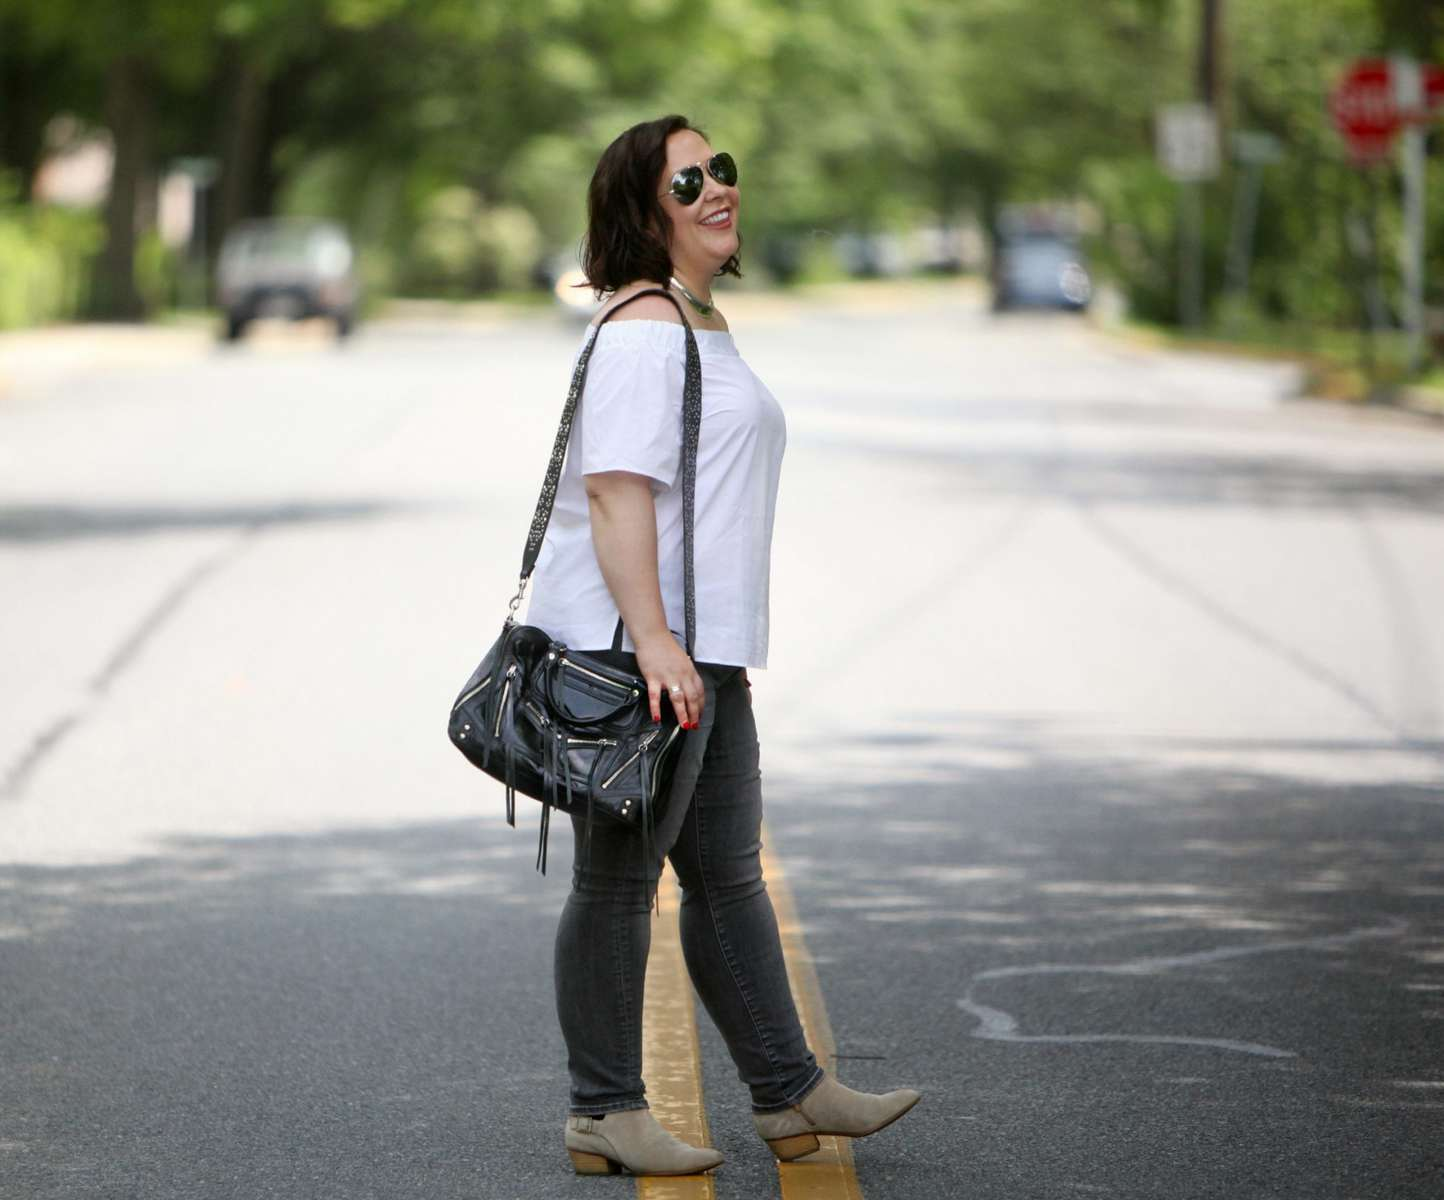 wardrobe oxygen wearing an asos off the shoulder top and rebecca minkoff bag